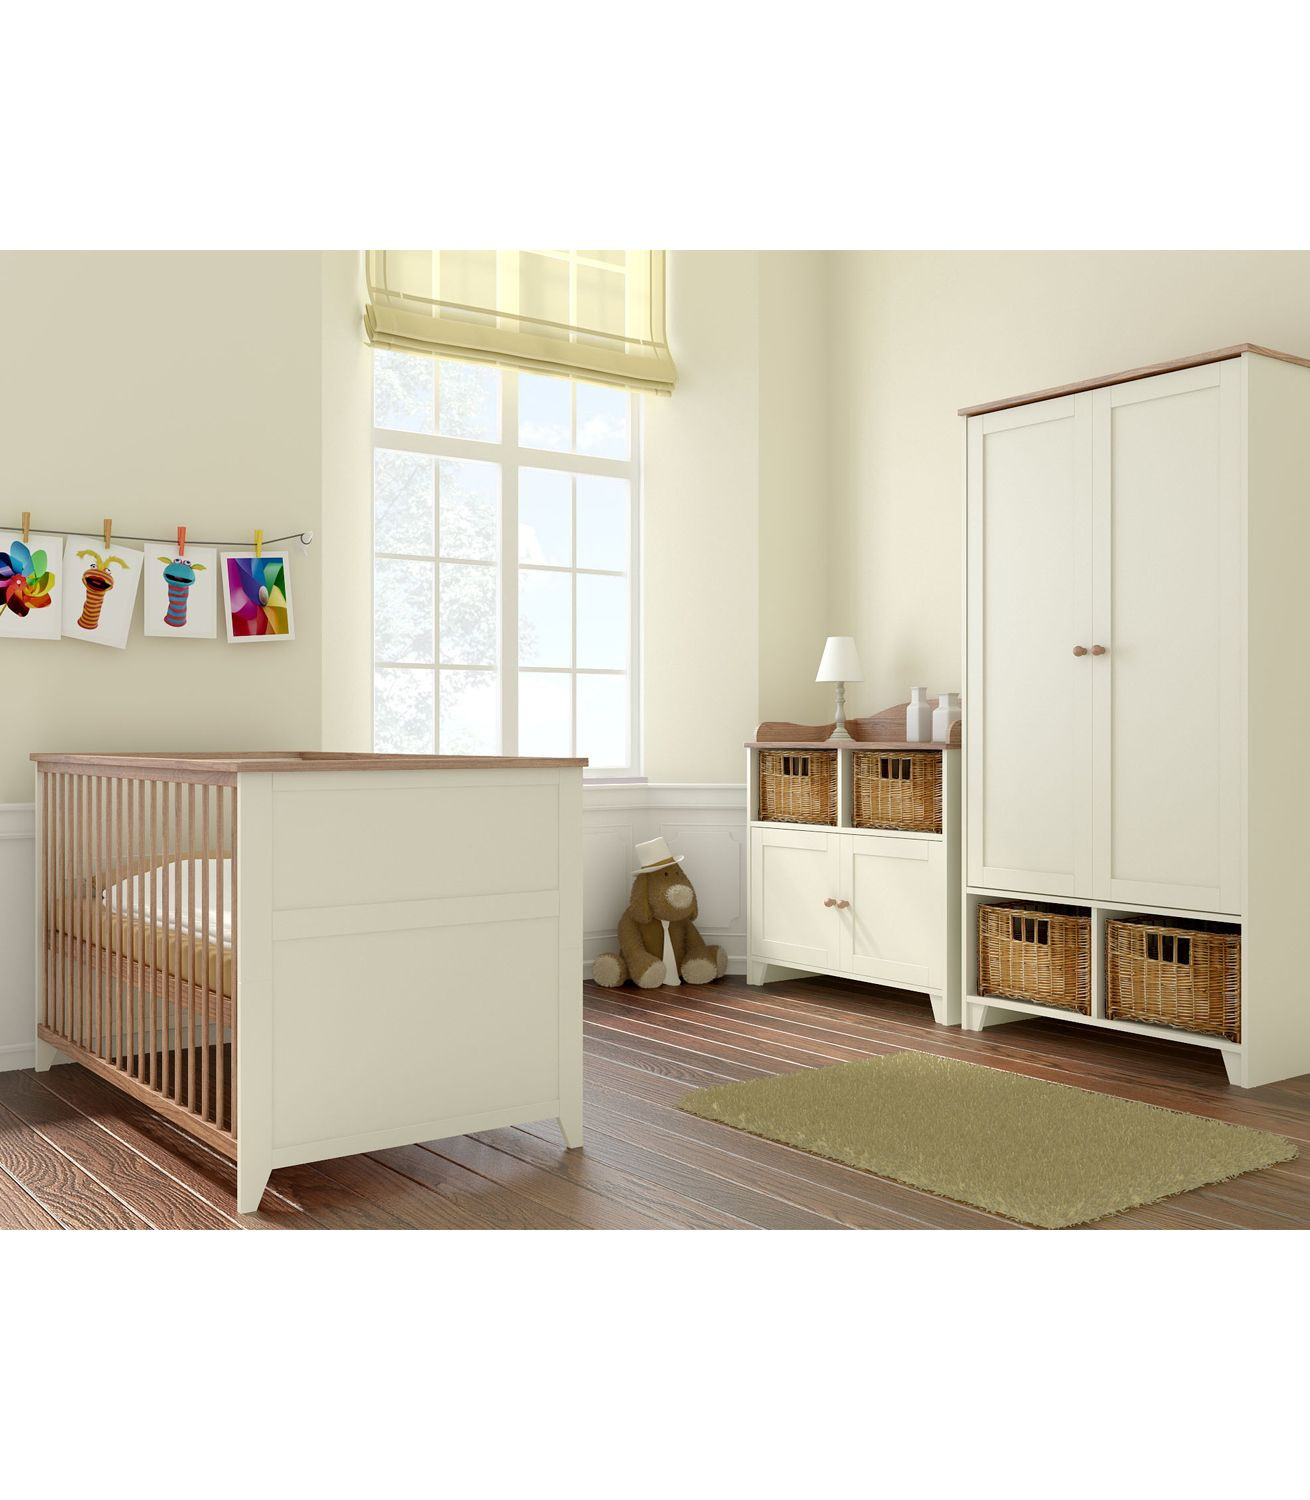 Buy Your Little Acorns Vanilla Roomset Cotbed Chest Wardrobe From Kiddicare Nursery Furniture Online B Nursery Furniture Sets Furniture Nursery Furniture